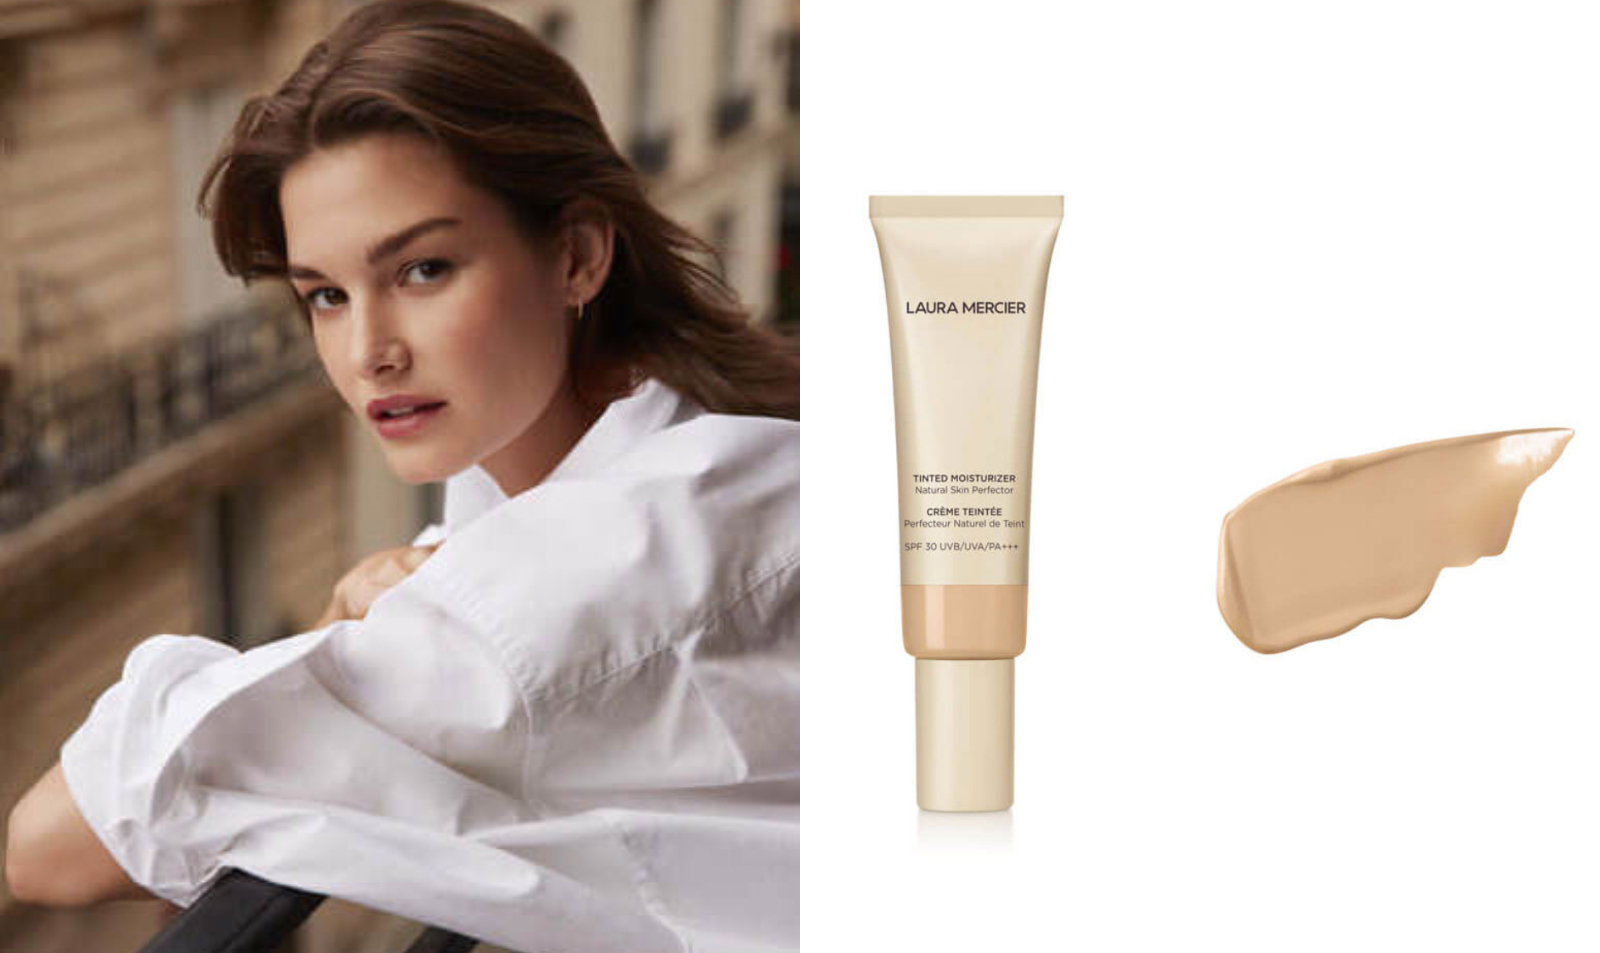 LAURA MERCIER Relaunches Tinted Moisturizer